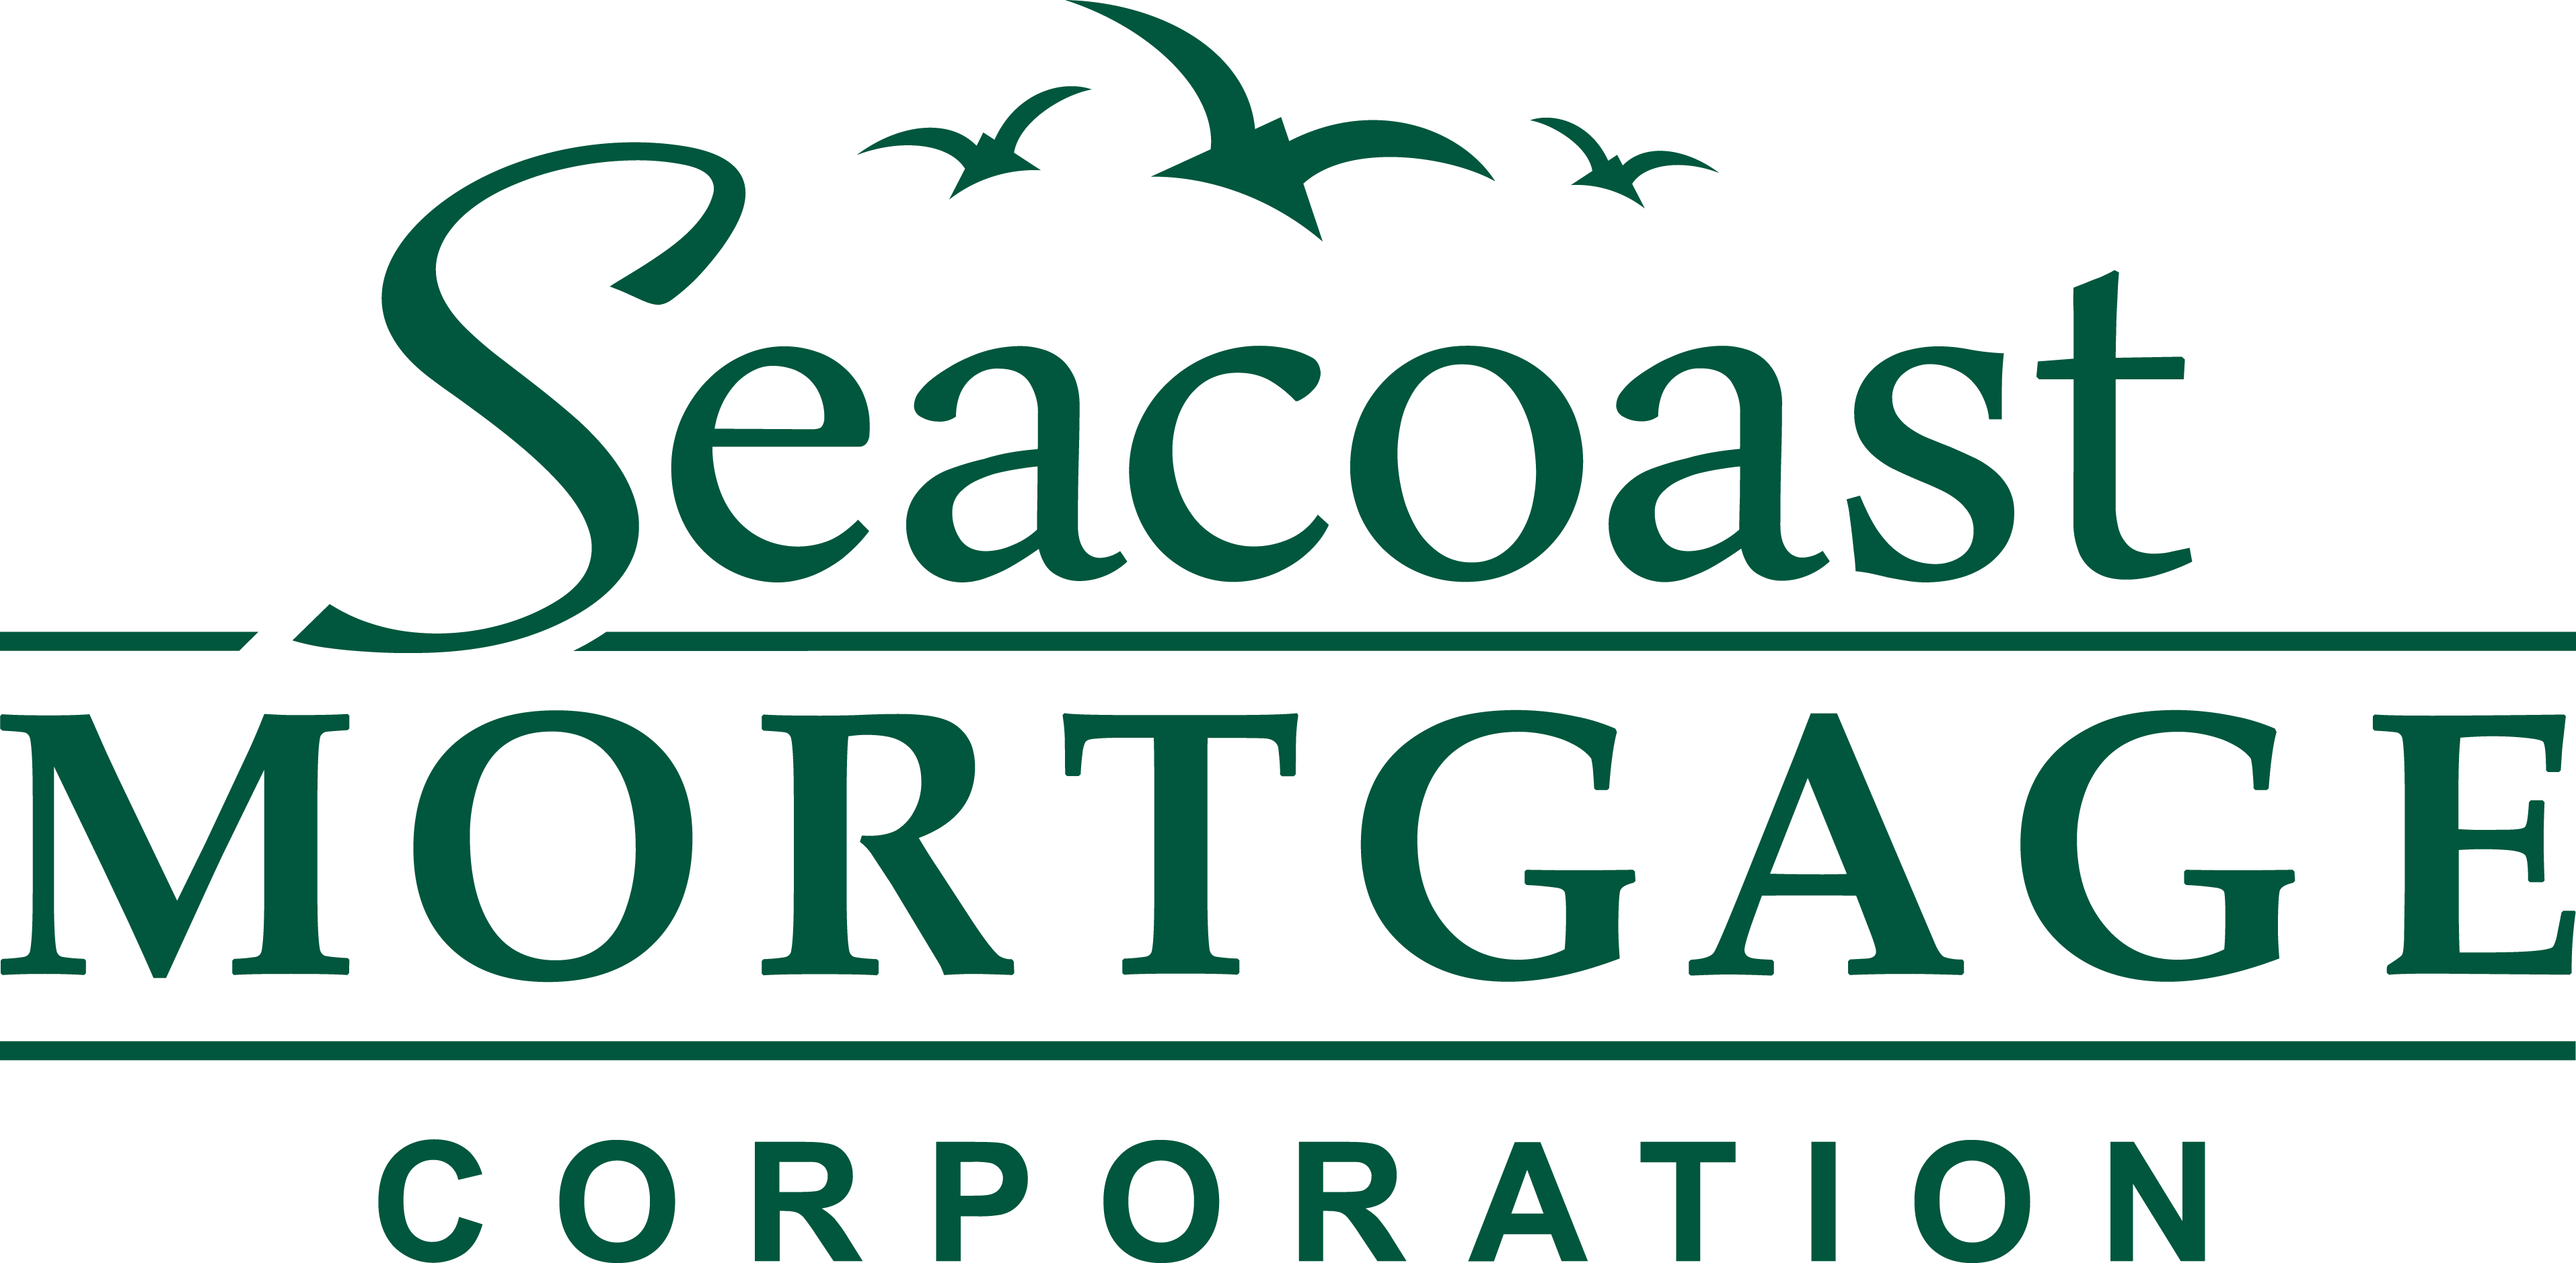 Seacoast Mortgage